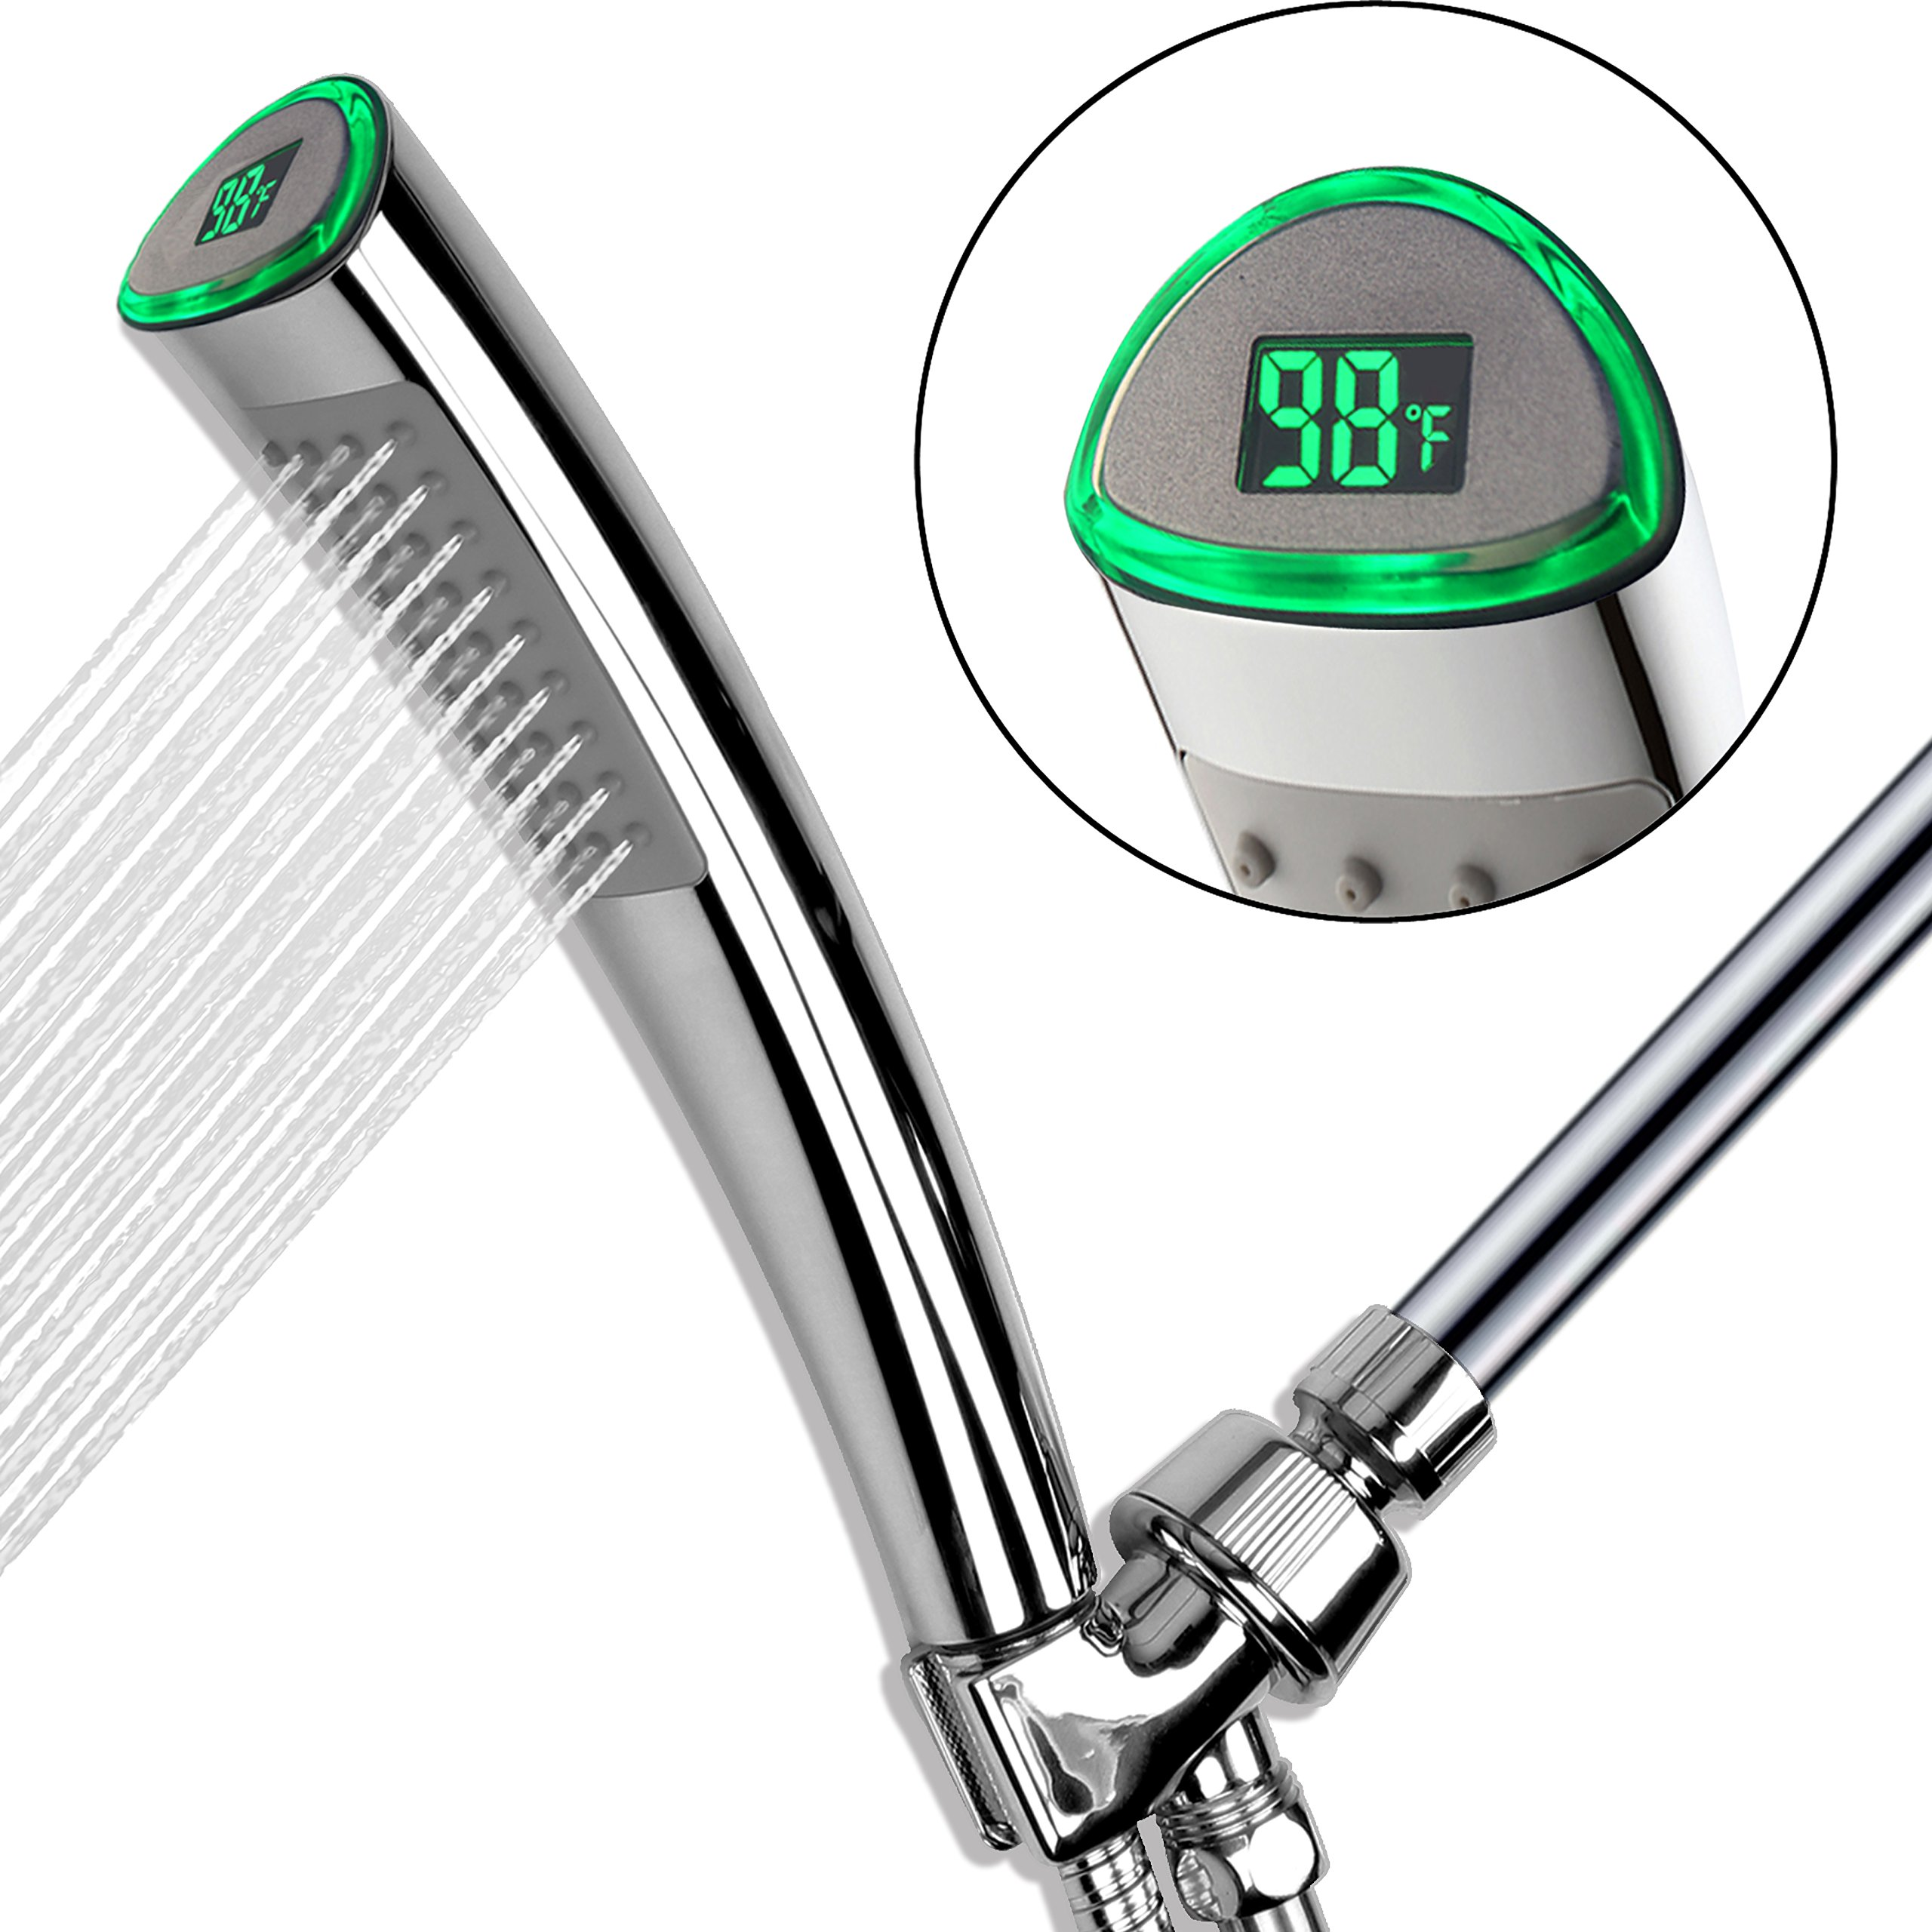 YOO.MEE LED Thermometer Handheld Shower Heads, Water Powered Light ...